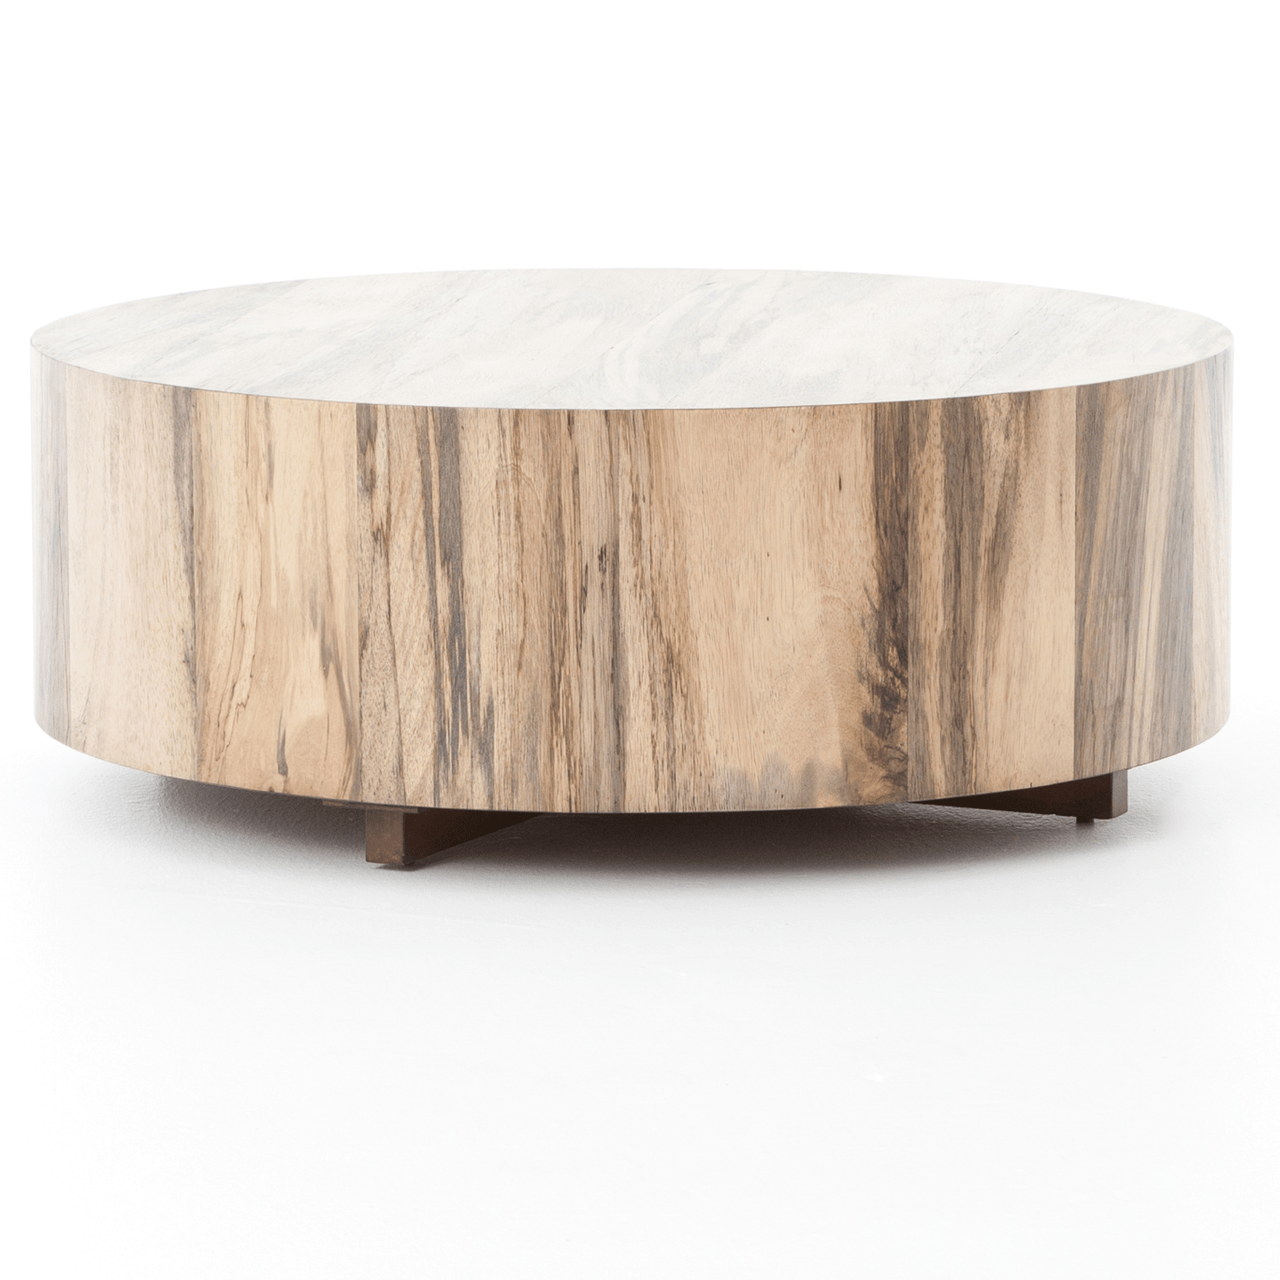 Hudson Sofa Collection Reviews Hudson Spalted Rustic Wood Block Round Coffee Table